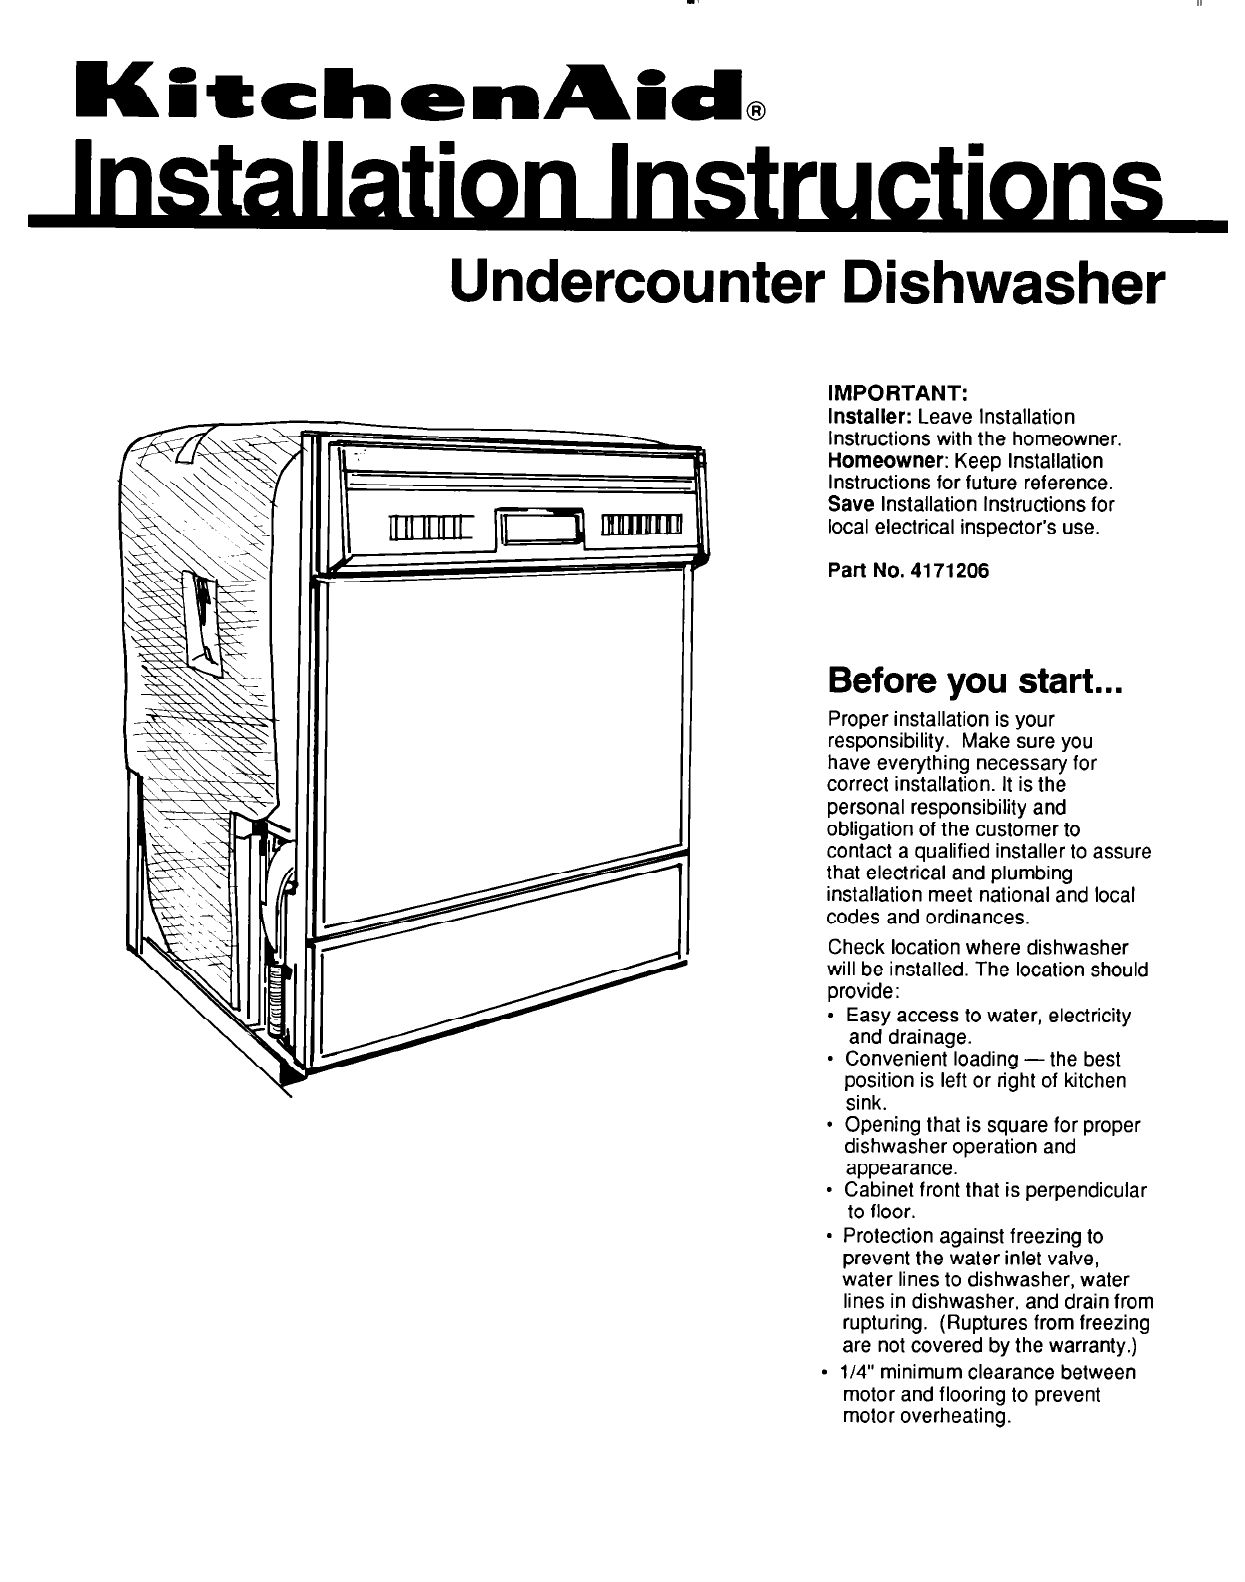 KitchenAid 4171206 Dishwasher User Manual